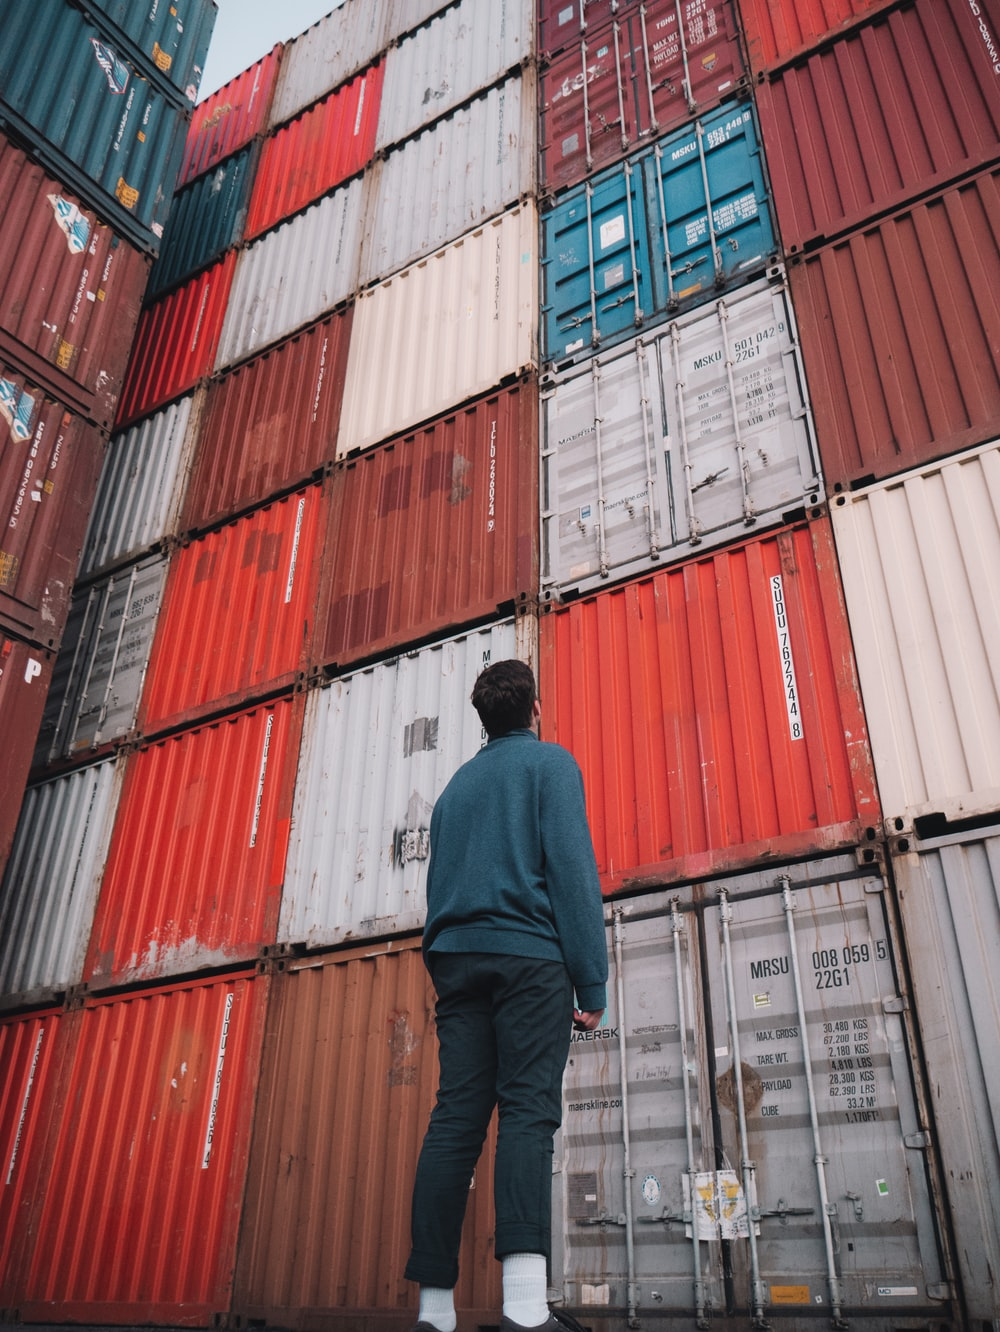 man in black jacket standing in front of red and blue intermodal containers